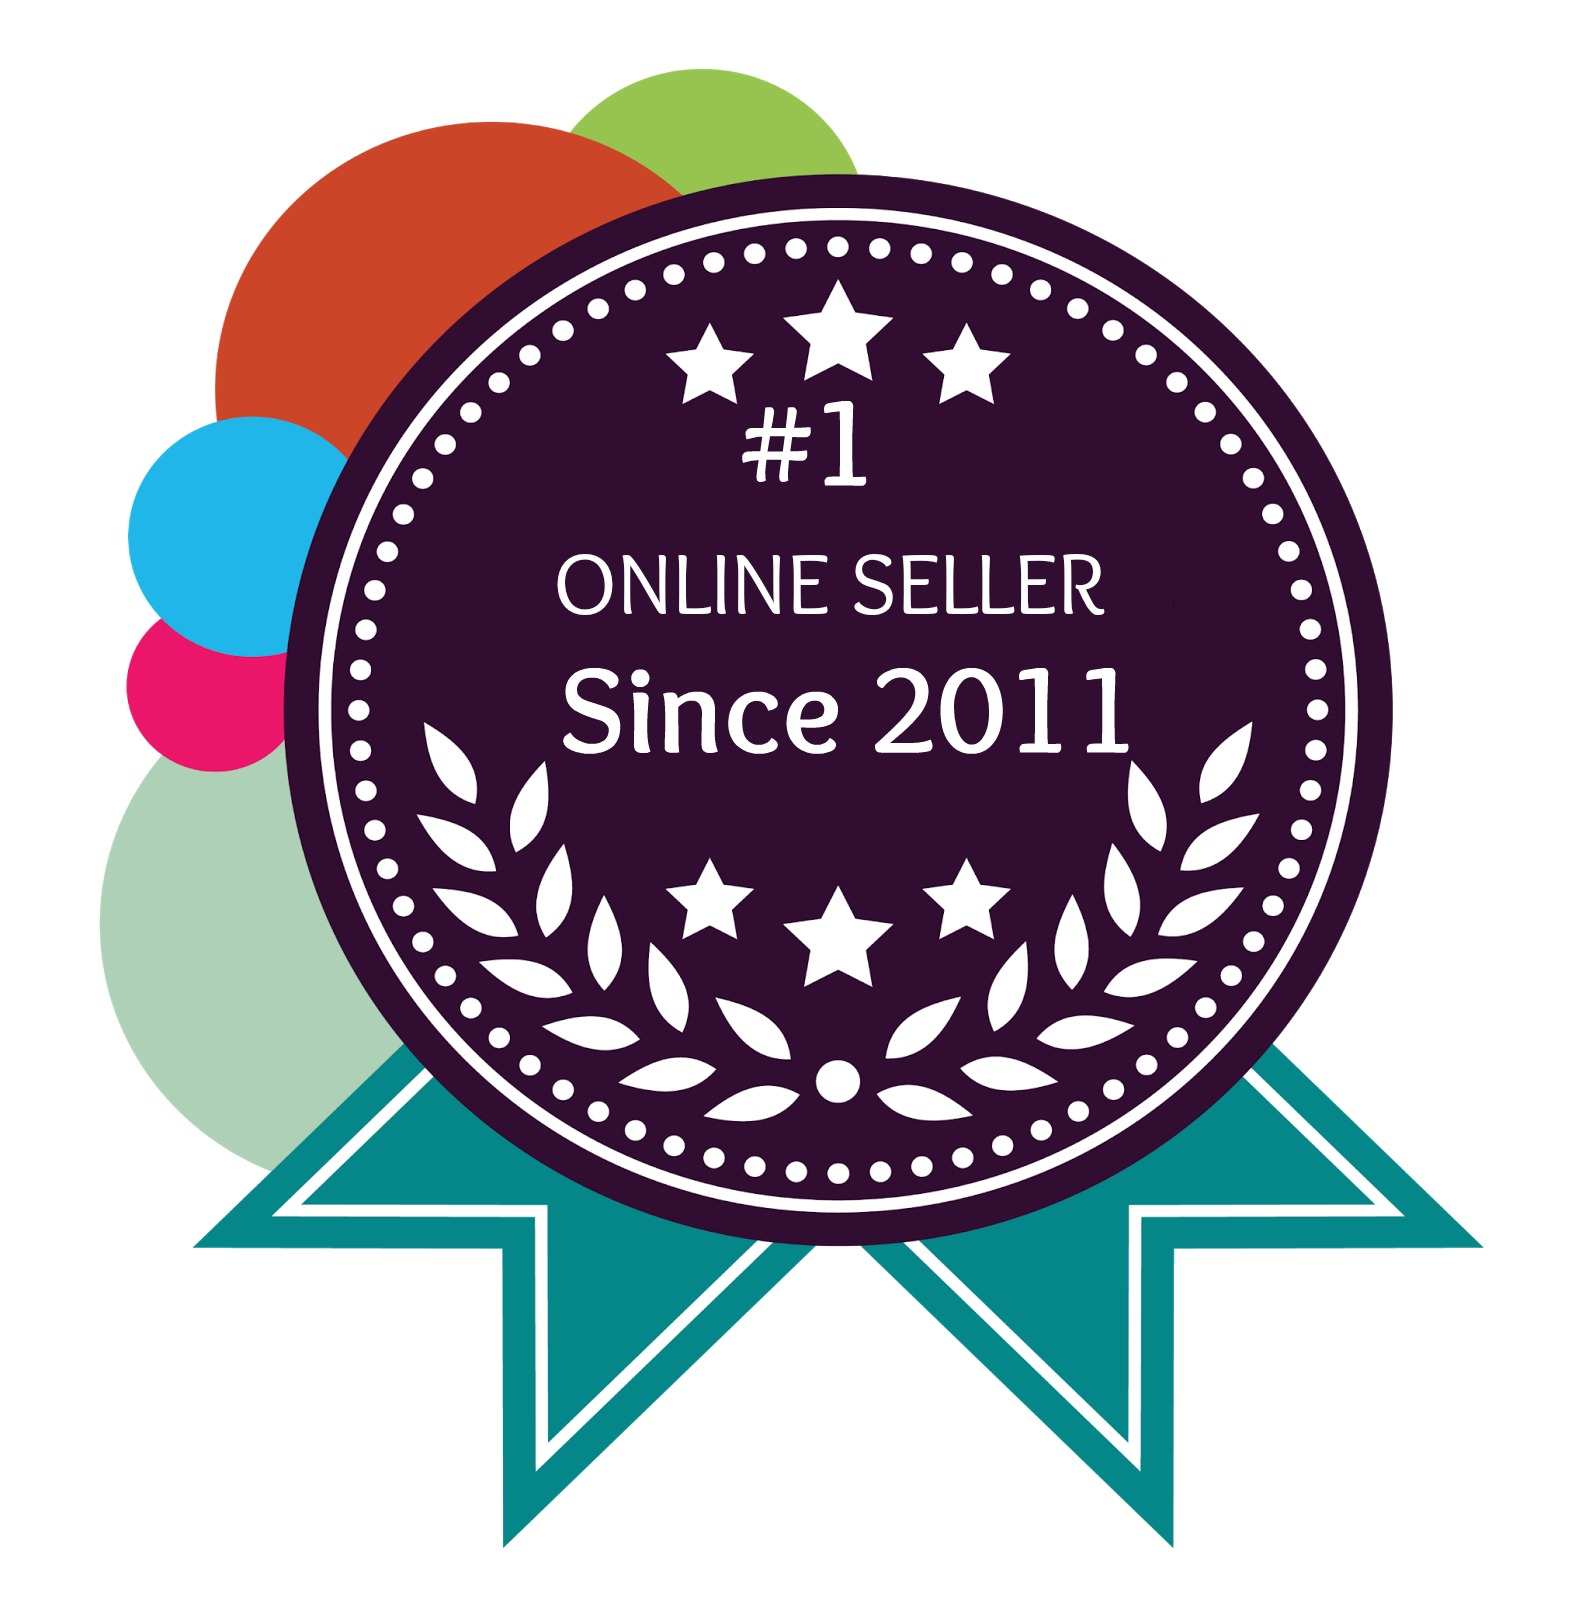 # 1 ONLINE SELLER OF QUANTUMIN PLUS